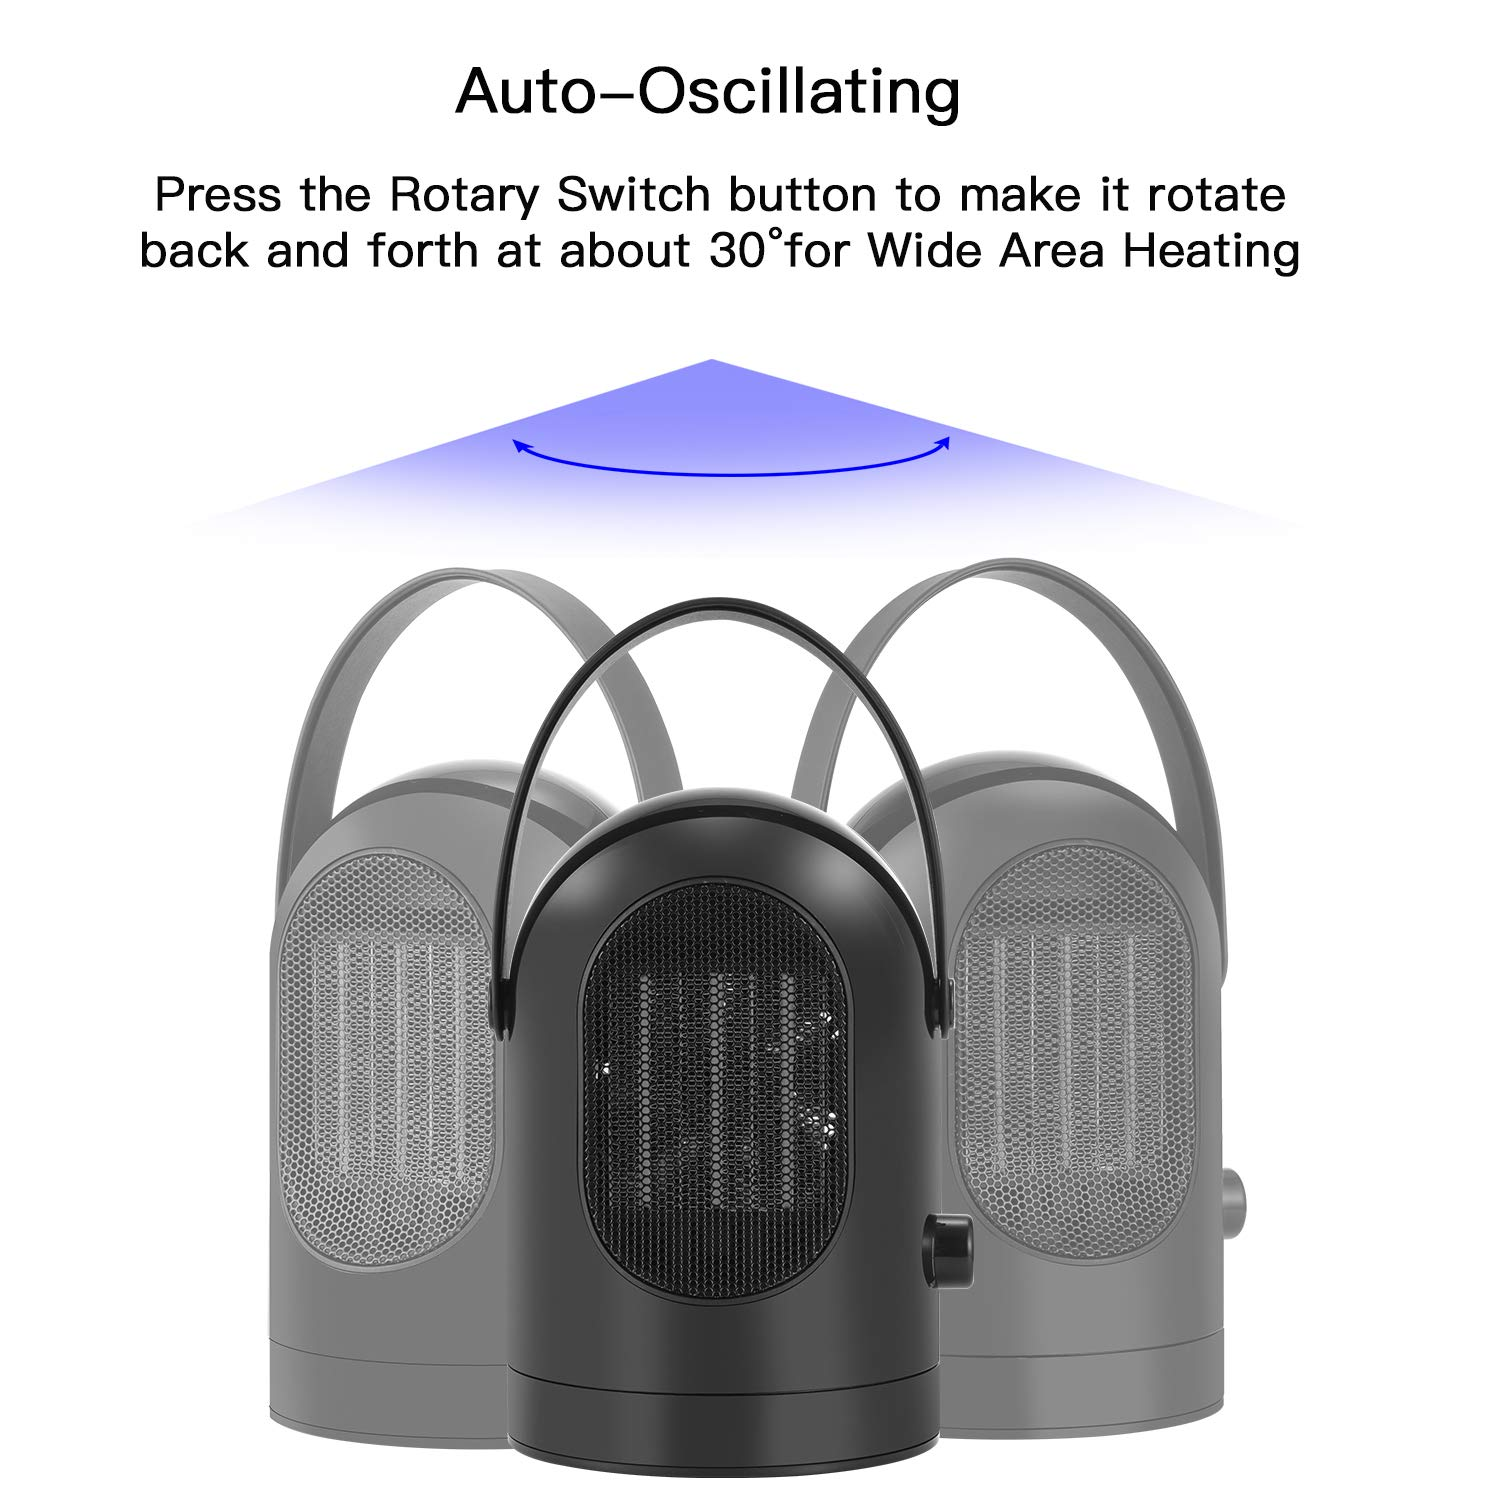 Fan Heater Oscillating Portable Ceramic Electric Heater, Personal Space Heater with Heat & Cool Settings, Adjustable Wind Speed, Overheat & Tip-over Protection for Office and Home Use, 600W, Black